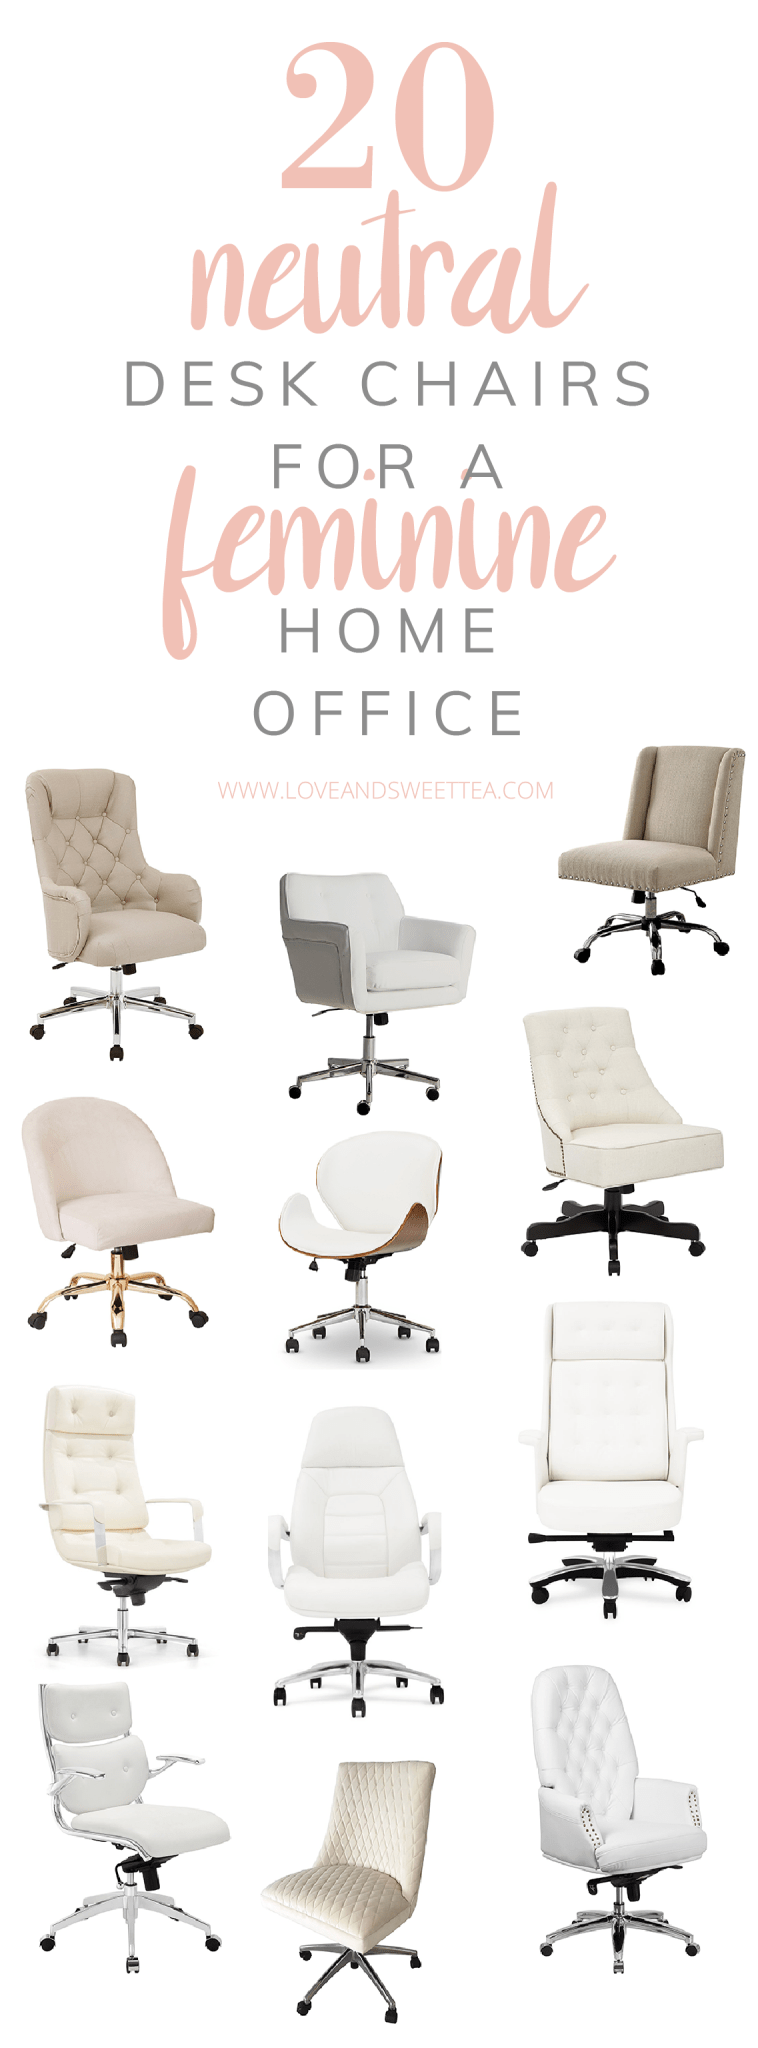 Finding cheap comfy desk chairs can be a serious challenge if you're going for beautiful home decor.So, I'm here to the rescue today to show you some options for comfy desk chair ideas that will look great in any space, even bedrooms or living rooms. Most of these comfy desk chairs are under $200, because let's get real, you're probably going to need another one soon if you are a work at home mom or have a busy office space in your house.